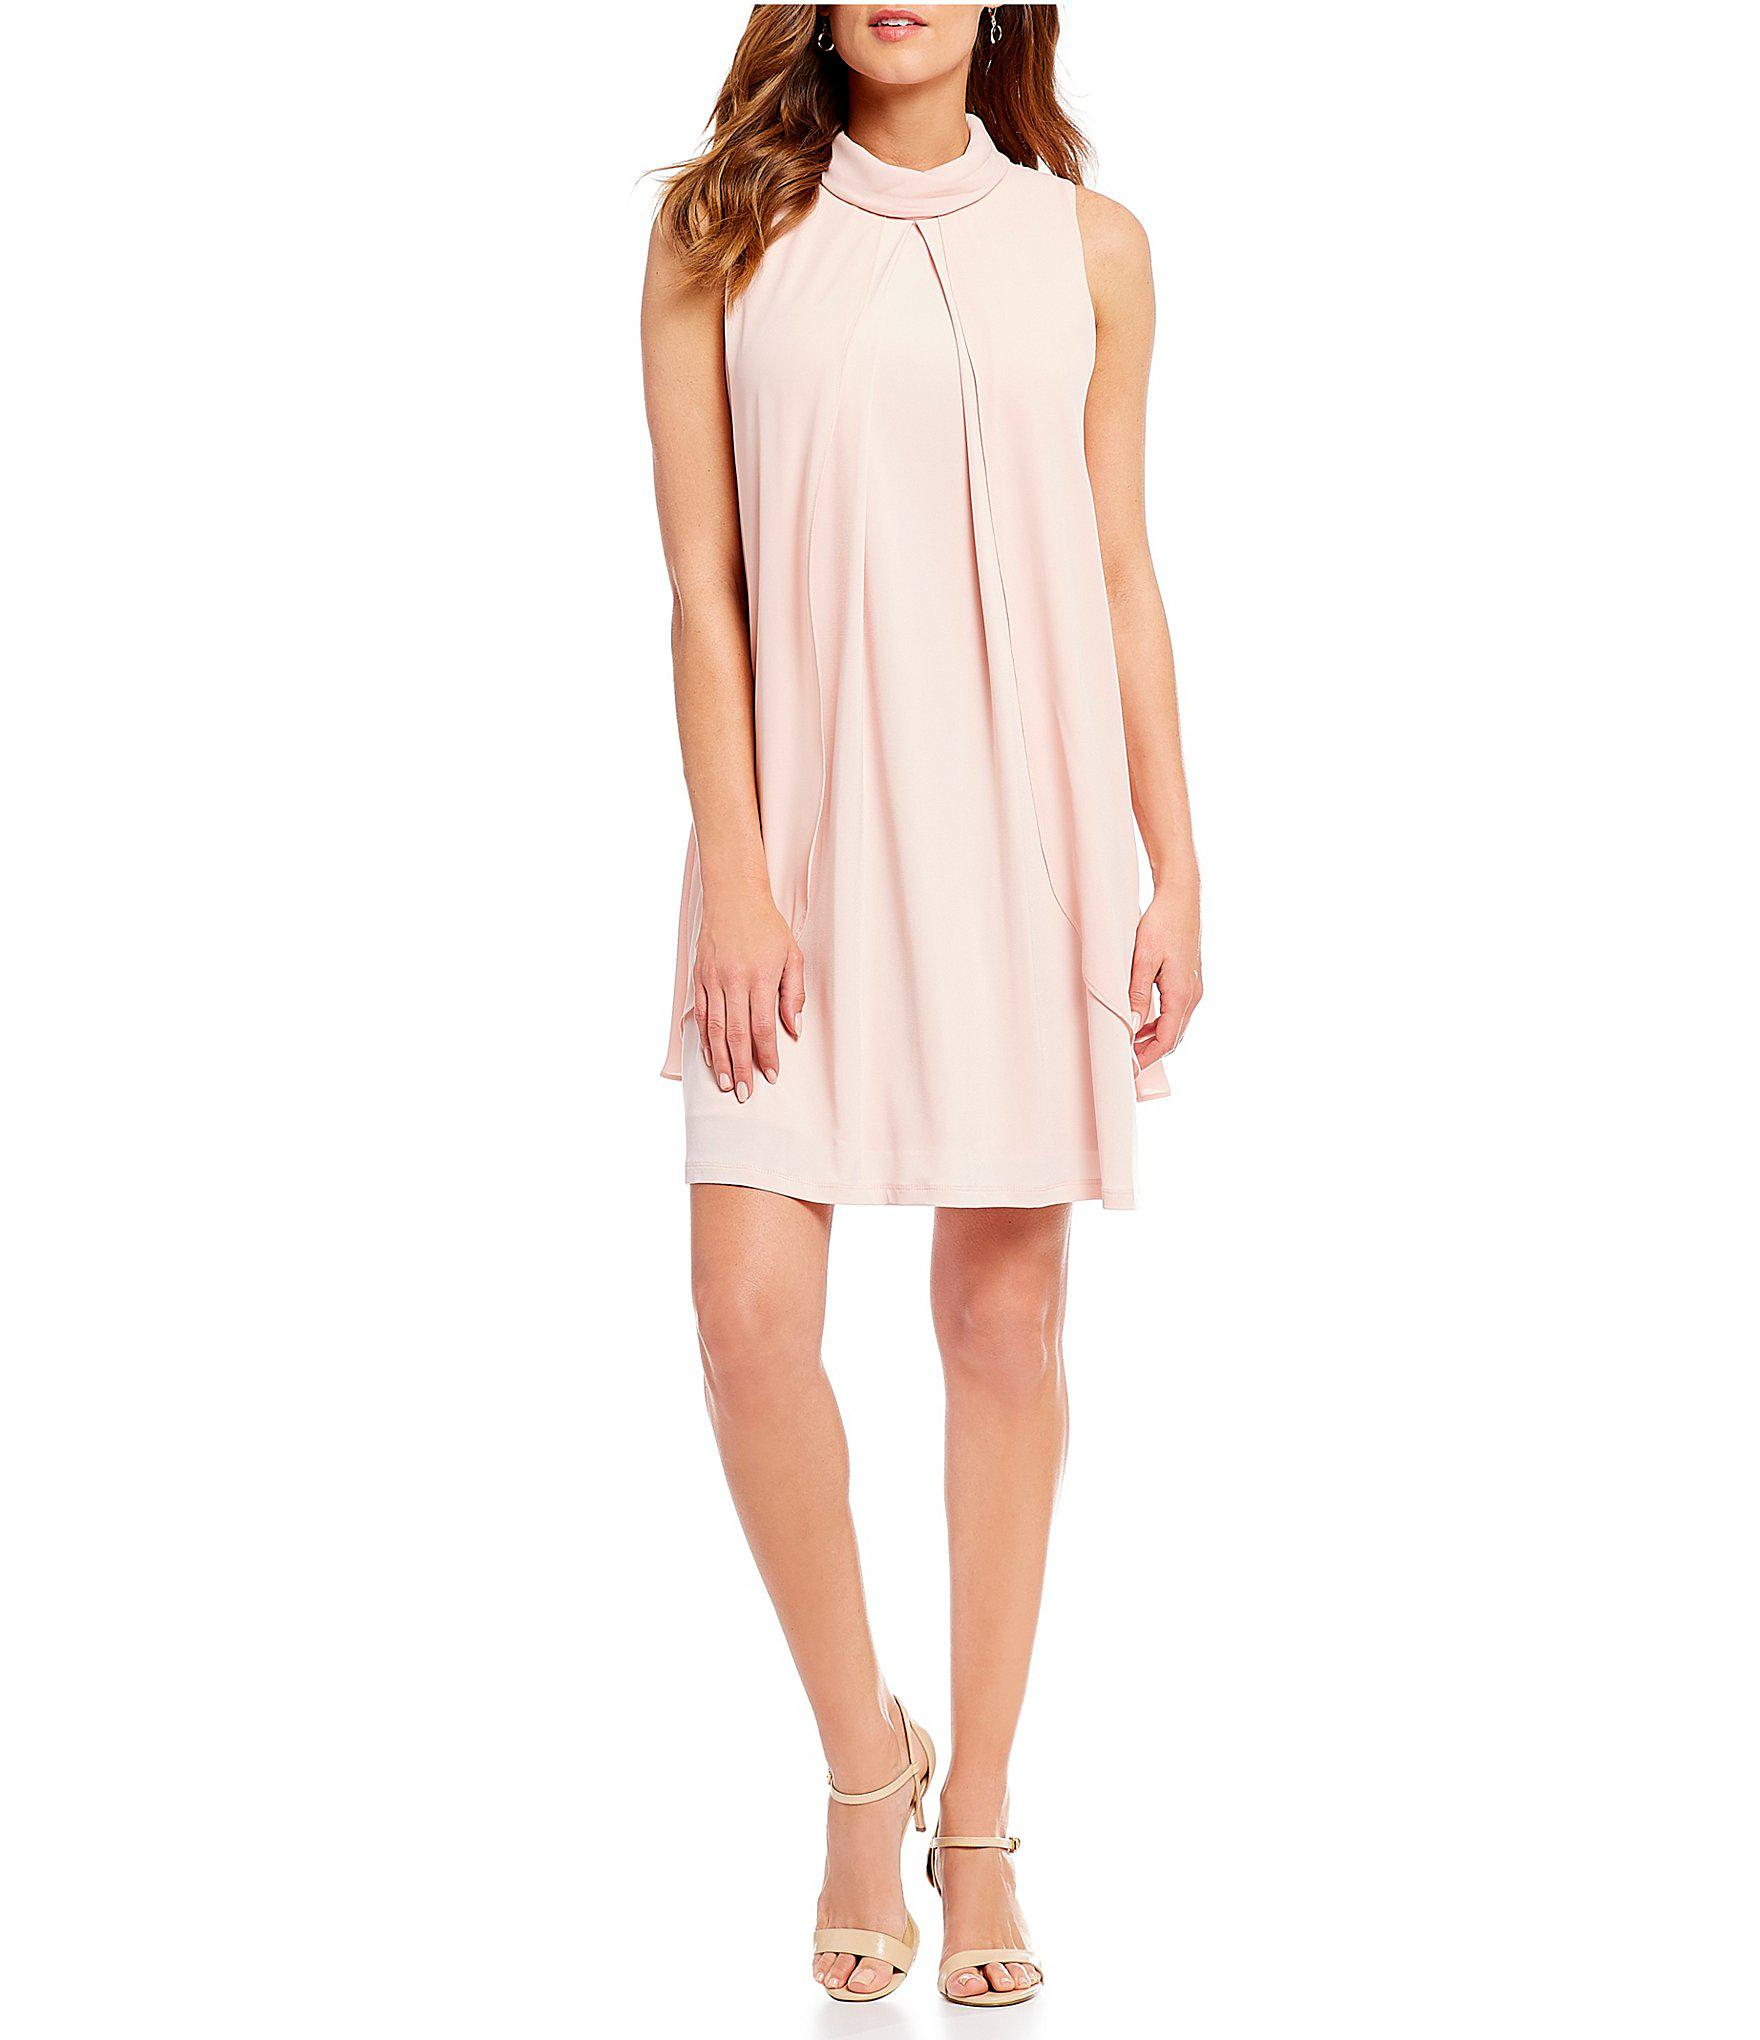 0c9e88a33c5 Ivanka Trump Chiffon Mock Neck Trapeze Dress in Pink - Lyst